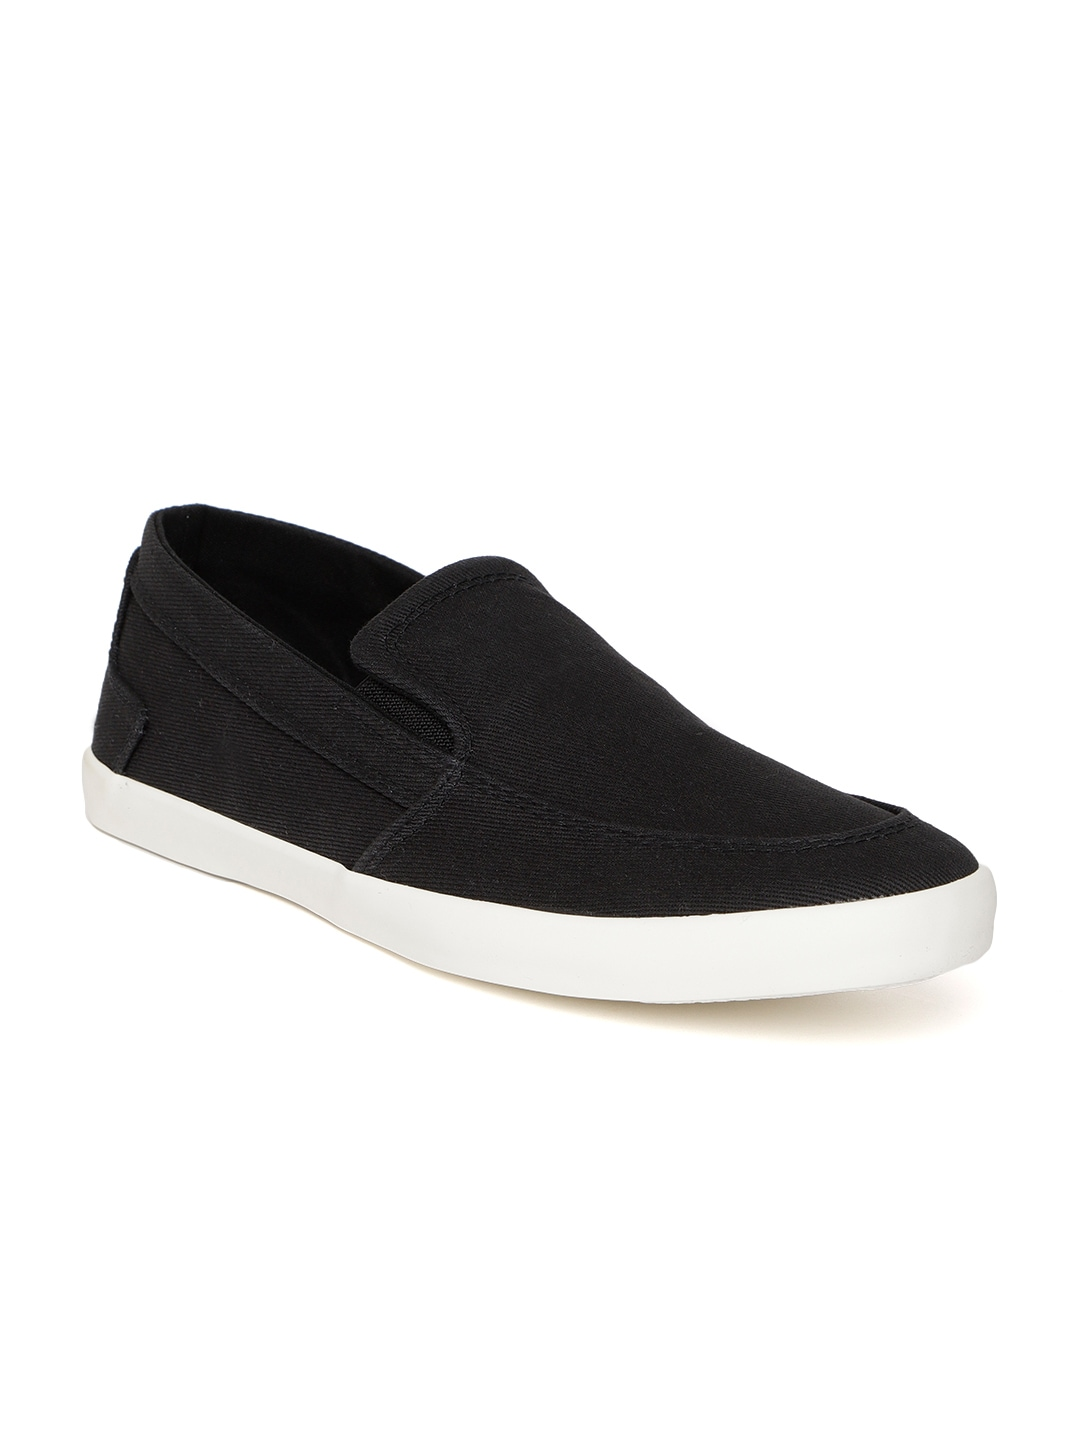 3592c481400b Slip-on Shoes - Buy Slip-ons for Men   Women Online - Myntra